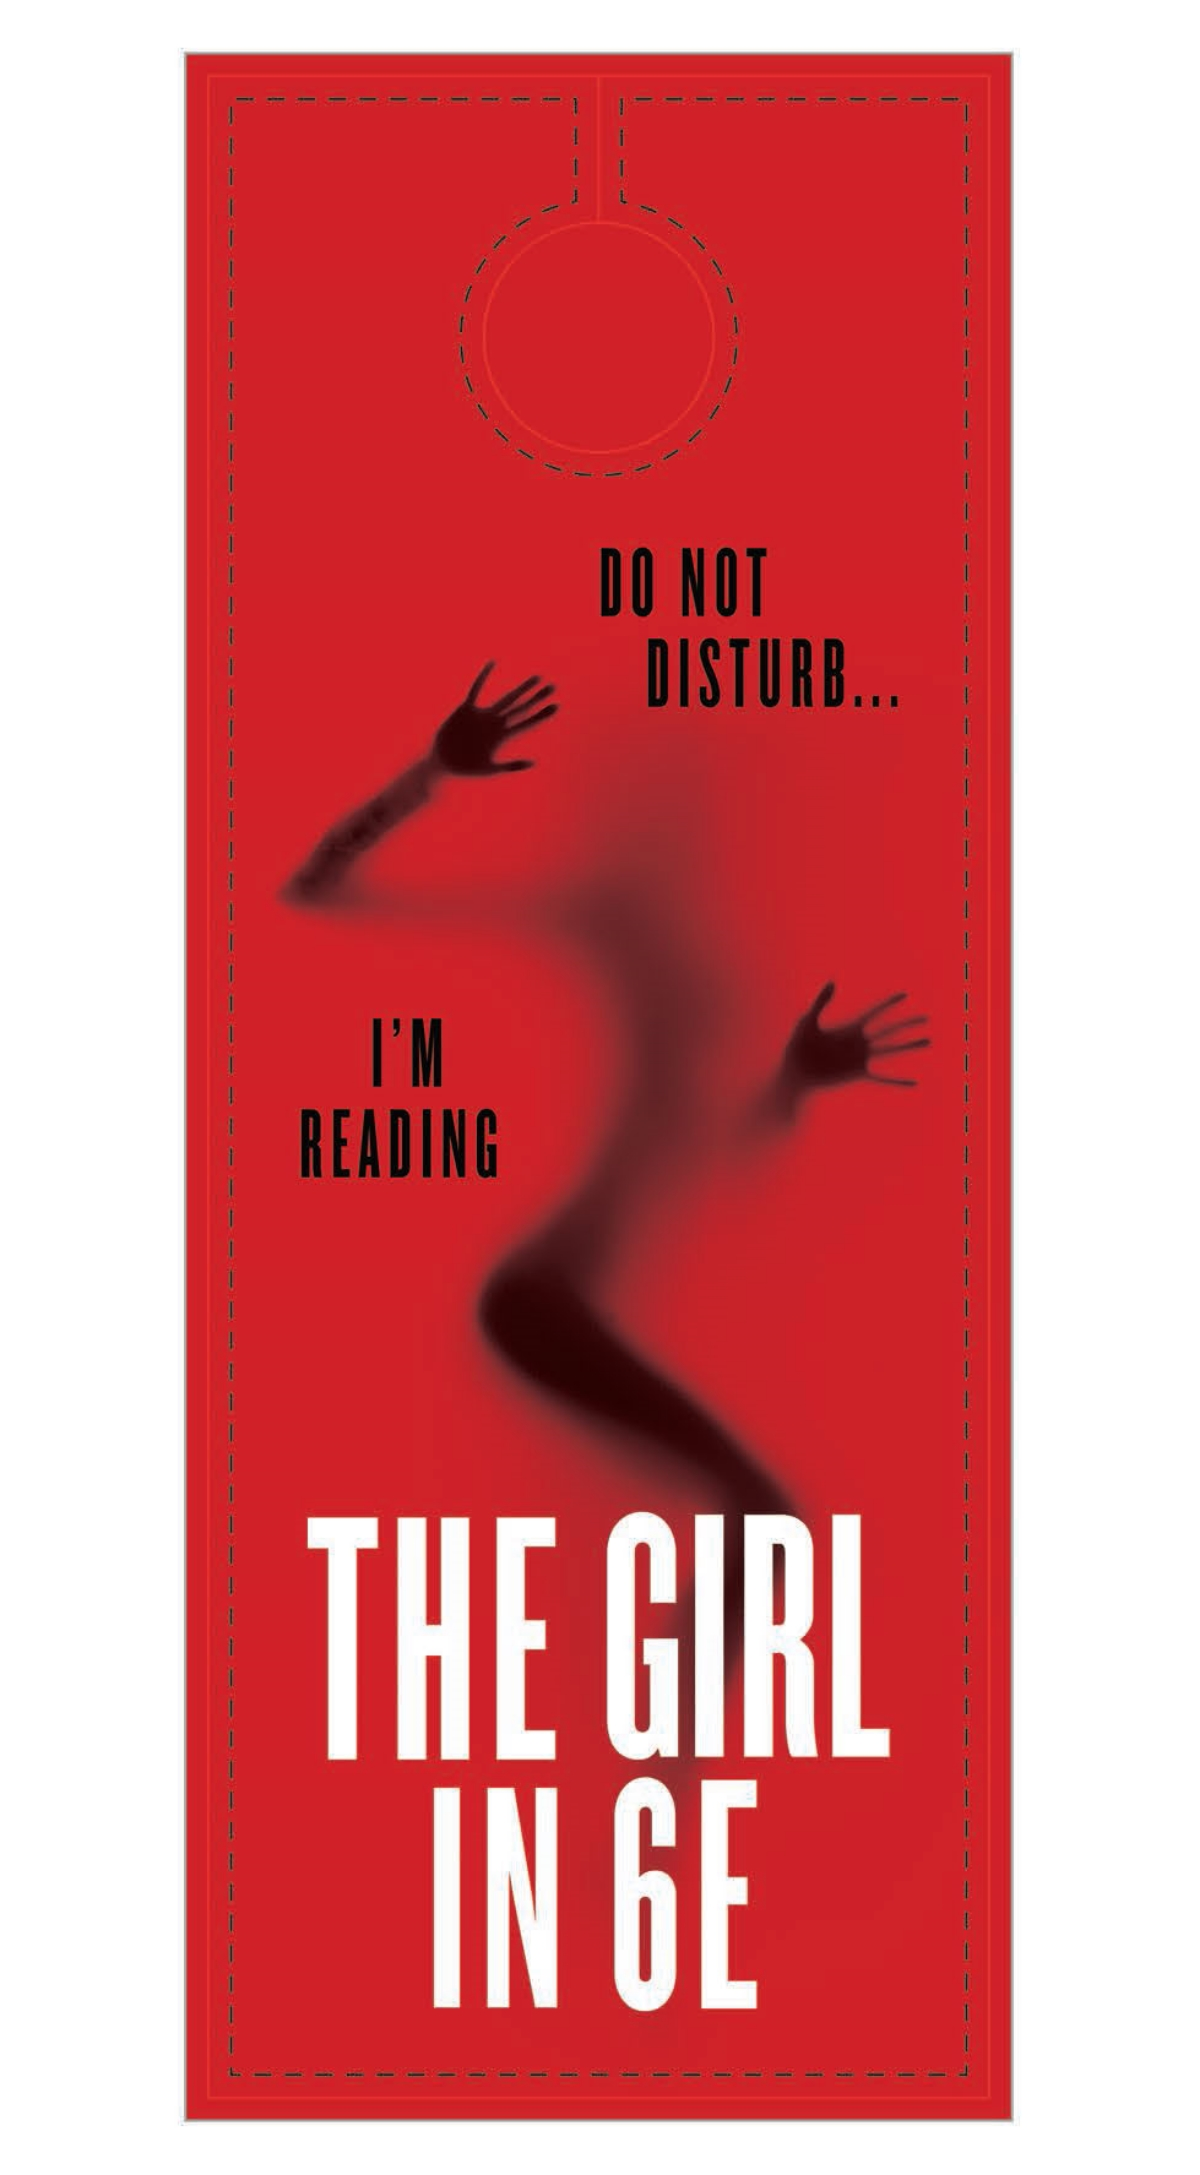 The Girl in 6E door hanger (1/2)